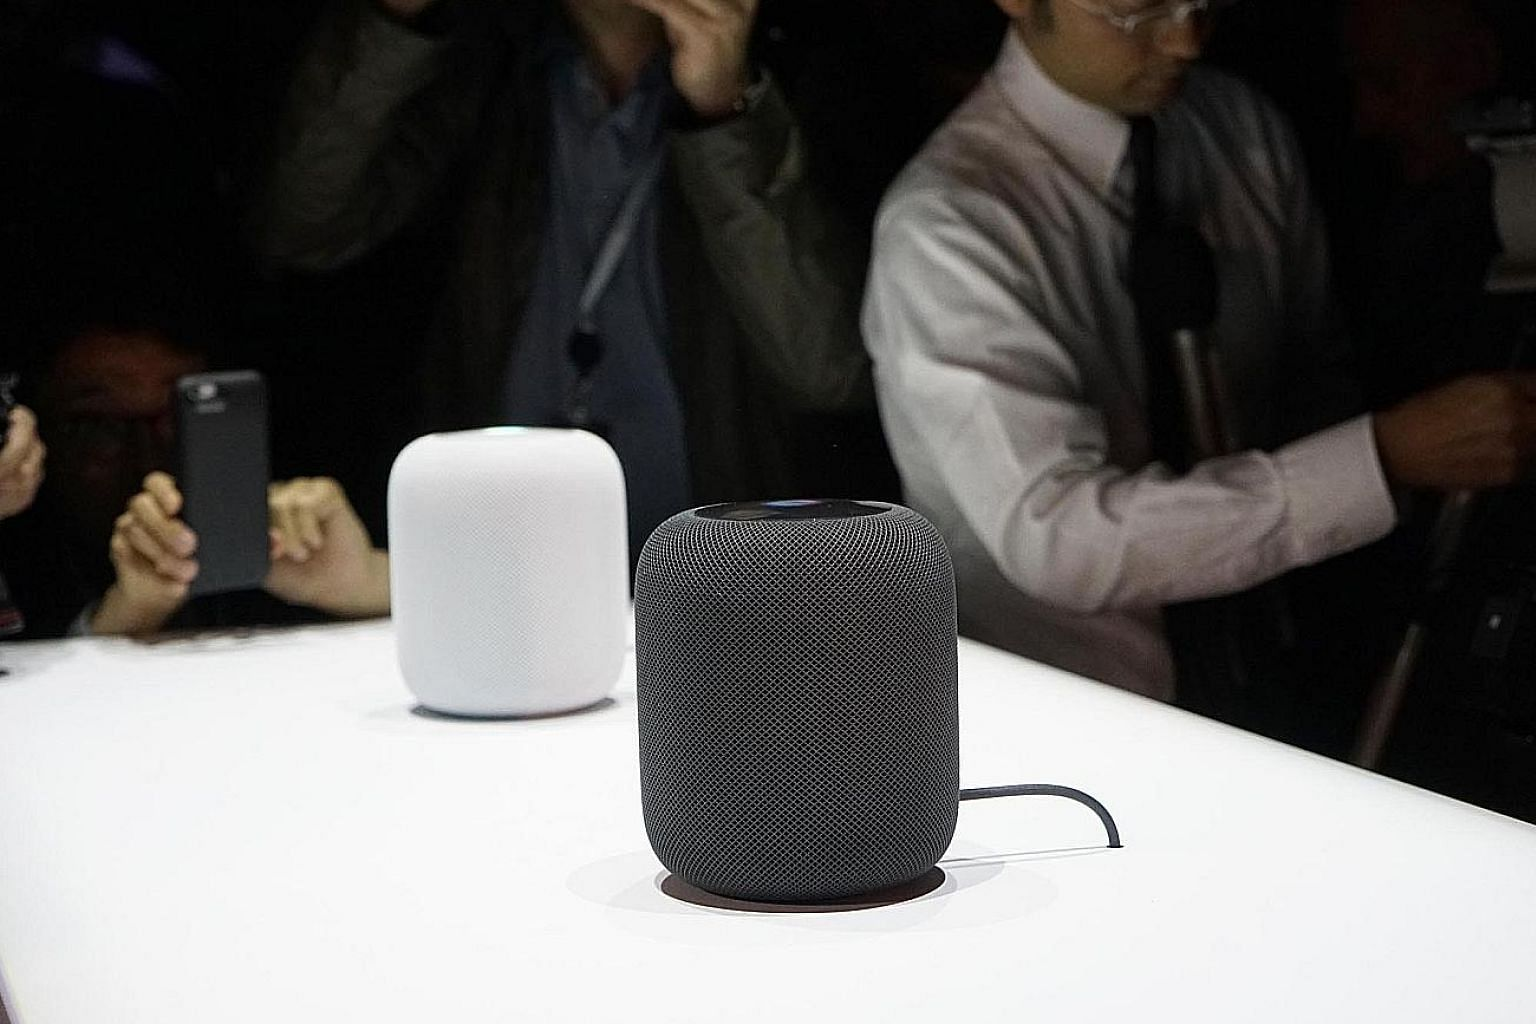 HomePod smart speakers on display at WWDC 2017 last week. While the product will not be available till December, the early announcement shows Apple wants to prevent buyers from rushing into other voice-activated speakers.